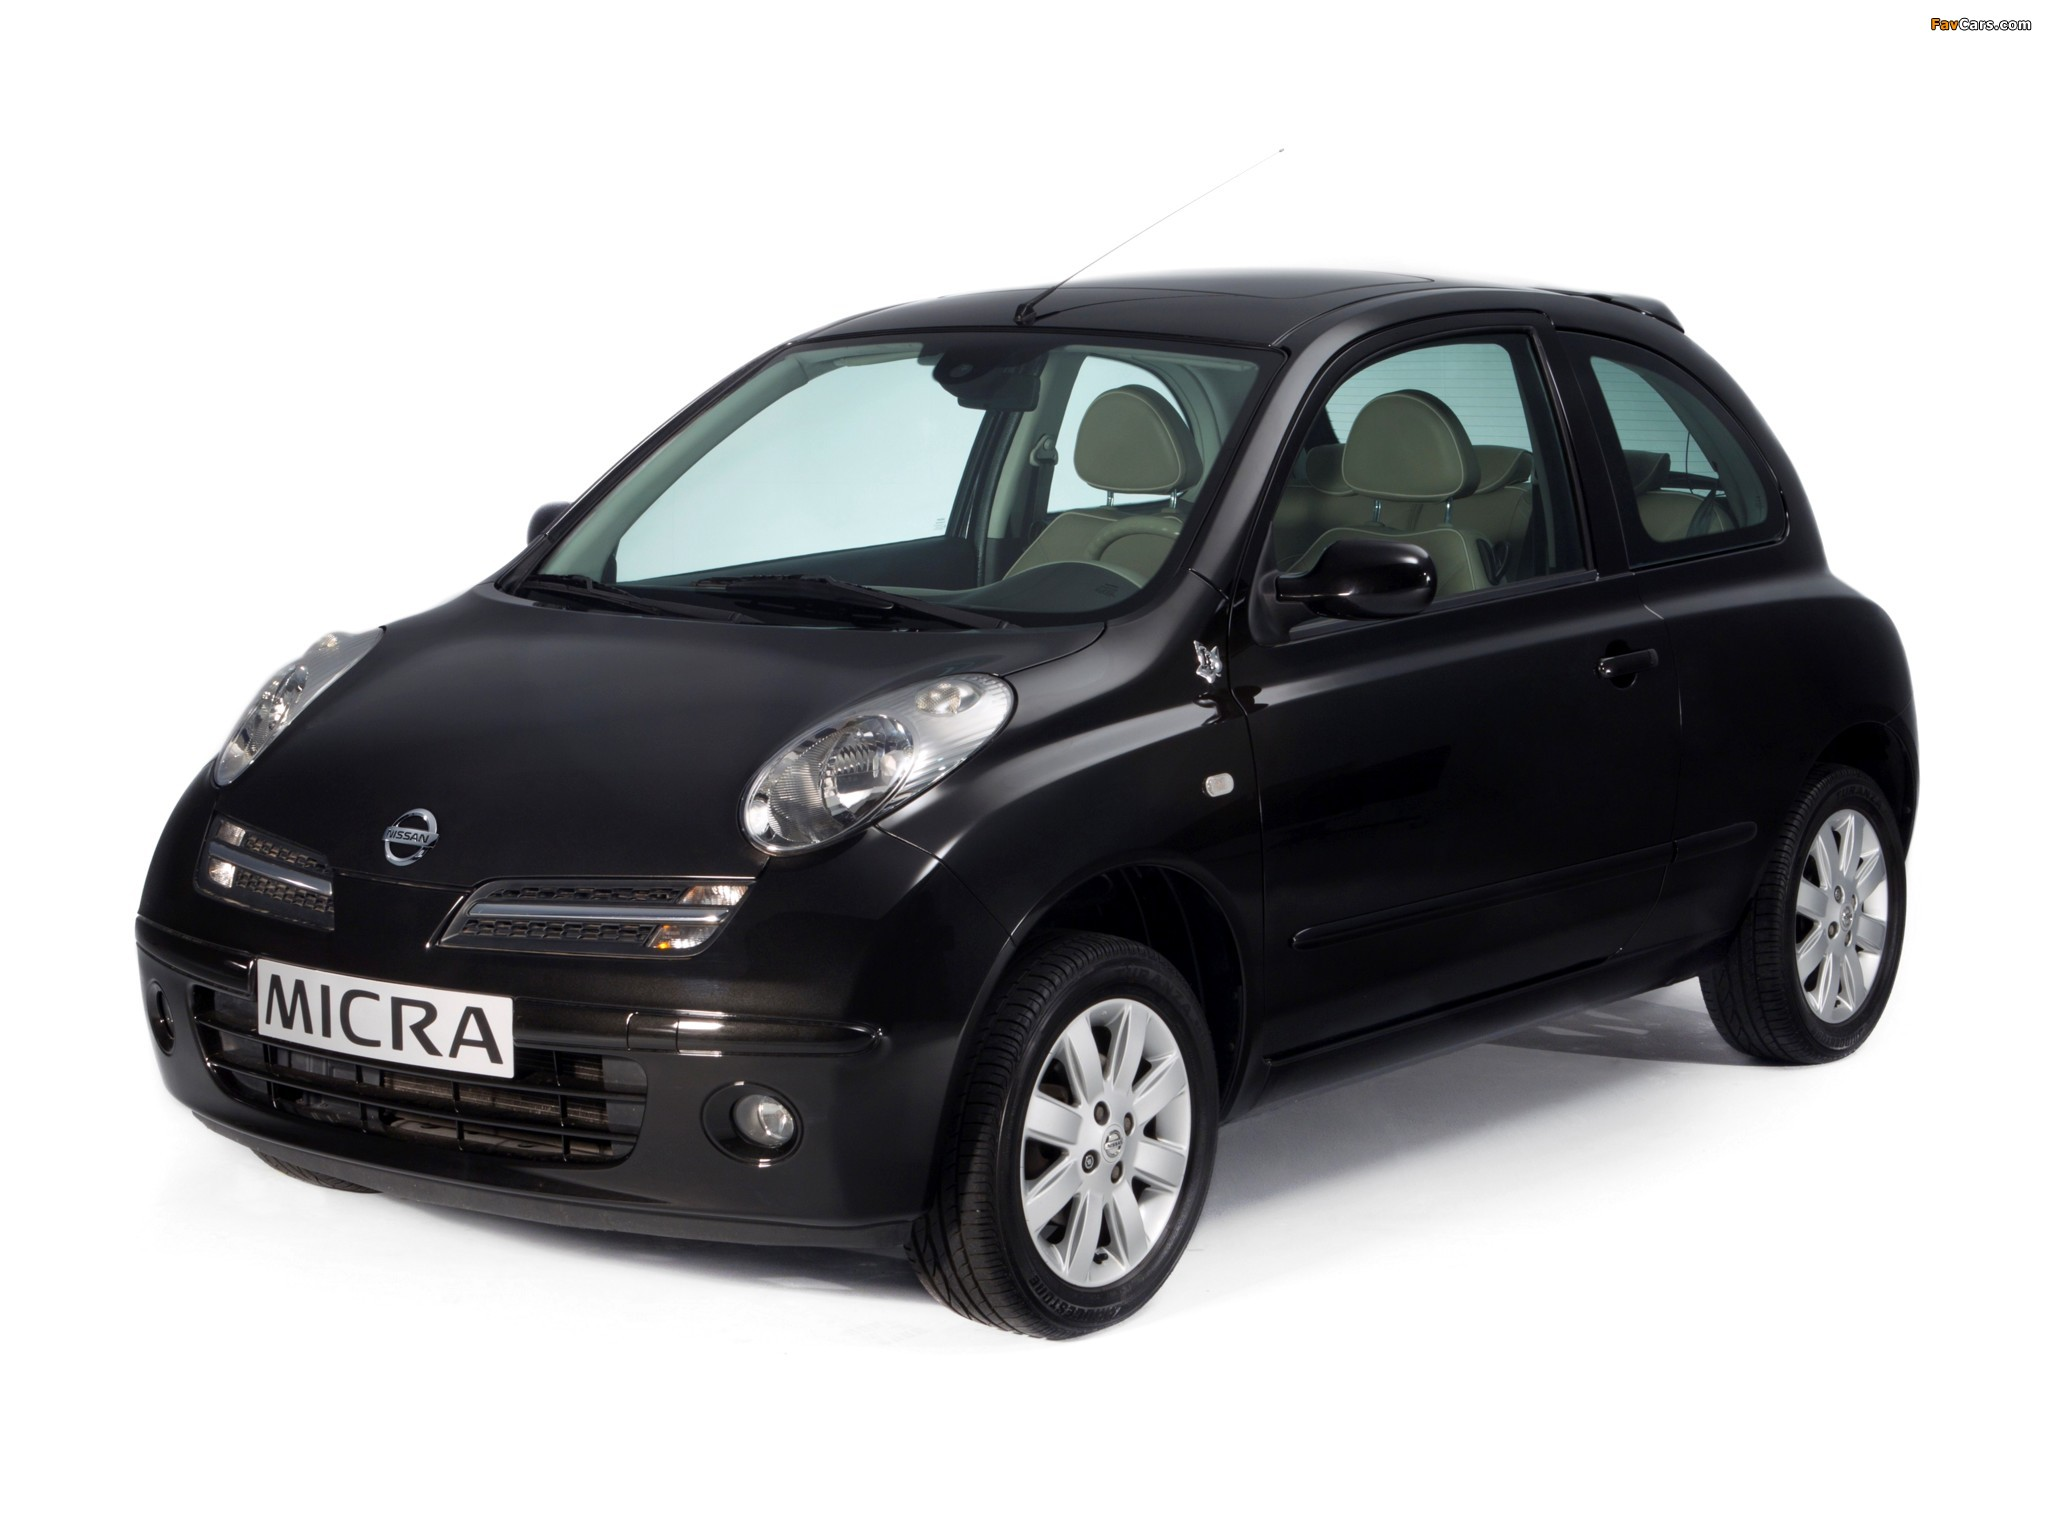 2007 nissan micra 3 doors partsopen. Black Bedroom Furniture Sets. Home Design Ideas